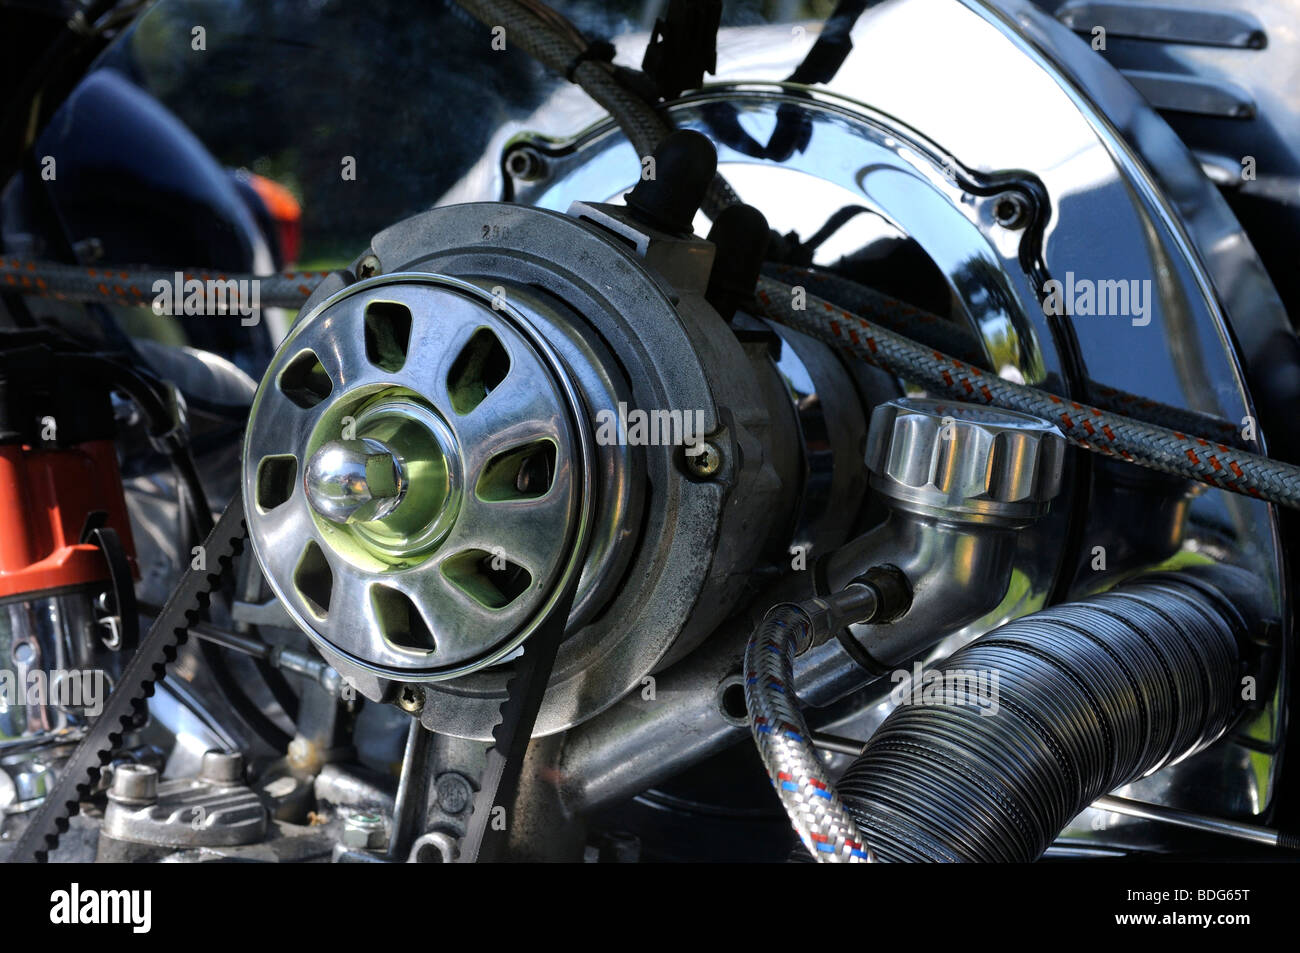 Detail of a VW Beetle flat twin engine, Germany - Stock Image